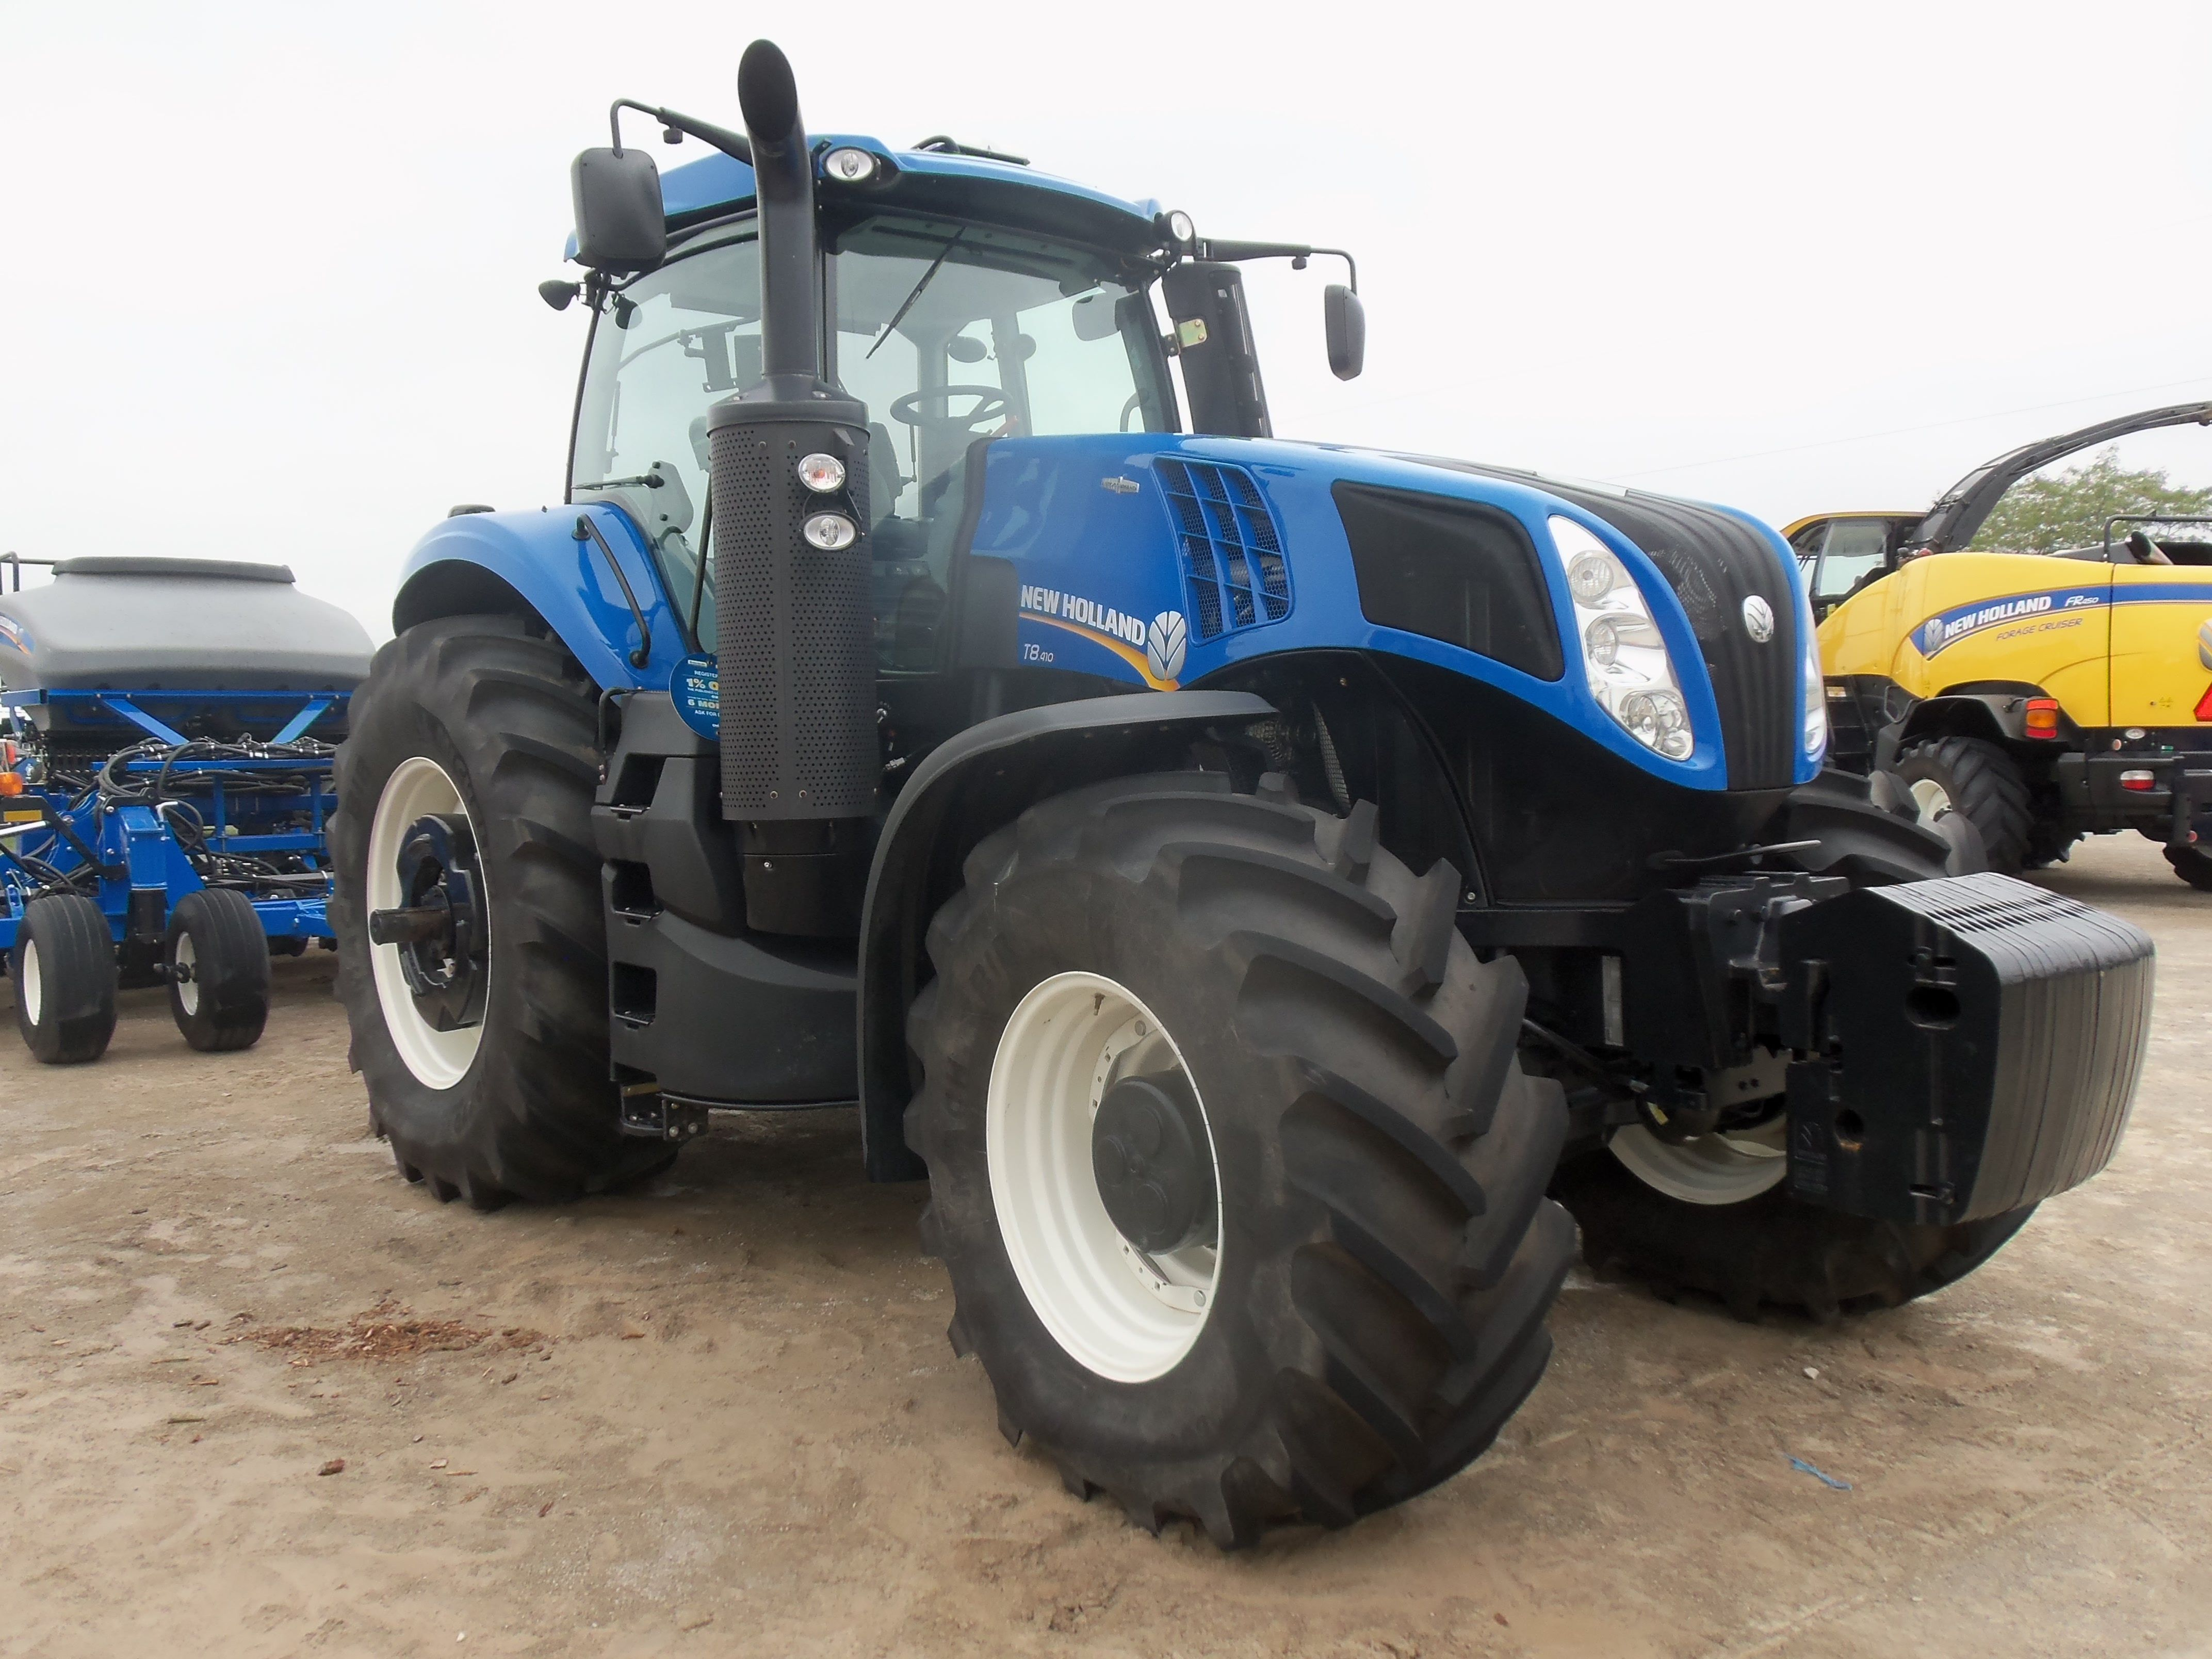 f3ca4583bd5d New Holland T8410 New Holland Tractor, Ford News, Tractors, Tractor Pulling